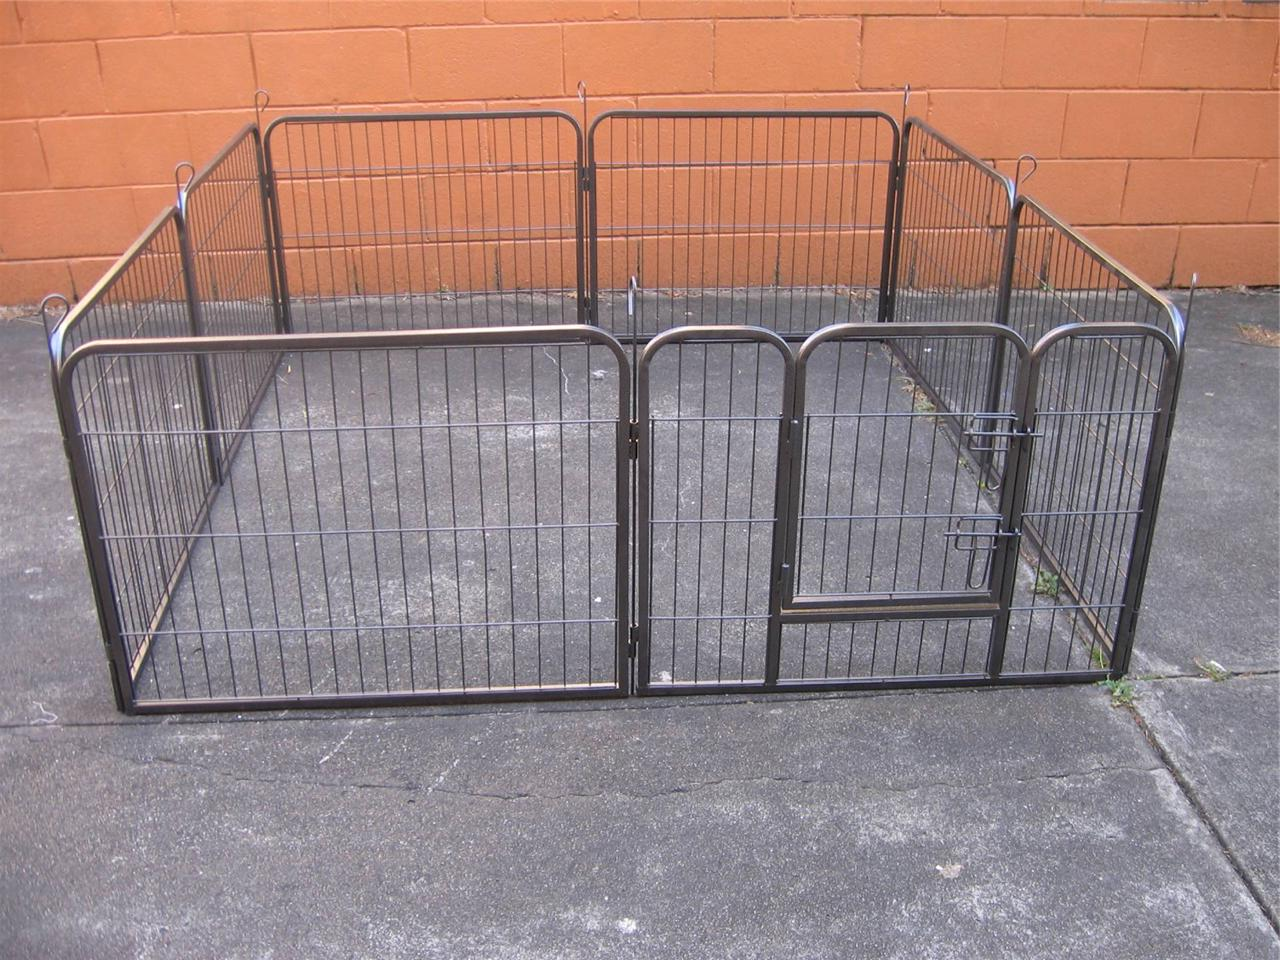 Portable Fencing For Dogs Electric